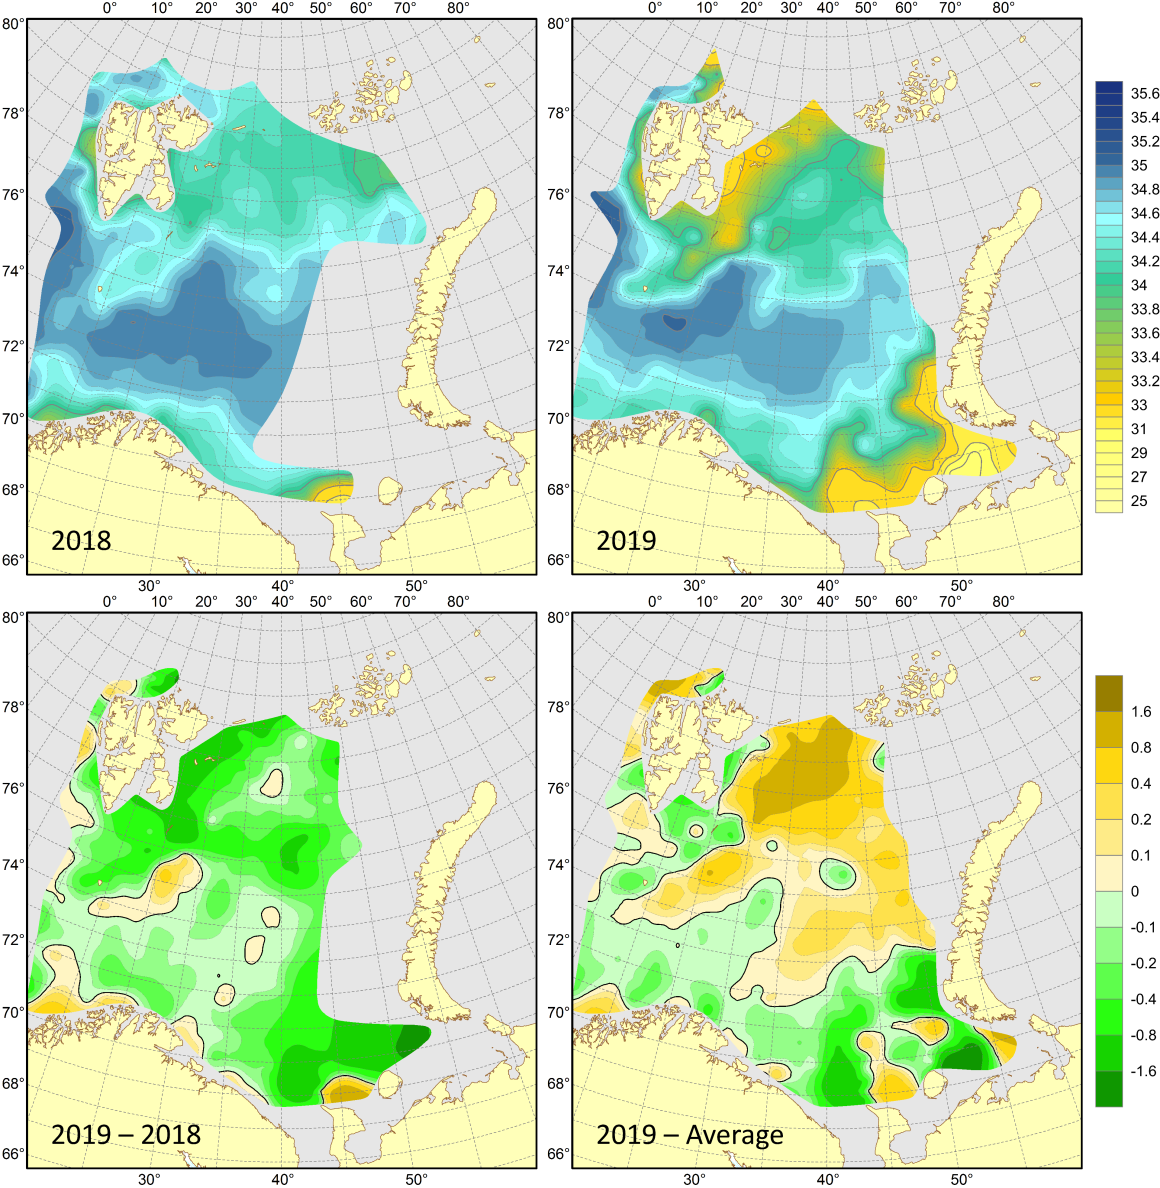 Figure 3.1.11. Surface salinities in August–September 2018 (upper left) and 2019 (upper right), their differences between 2019 and 2018 (lower left) and anomalies in August–September 2019 (lower right).